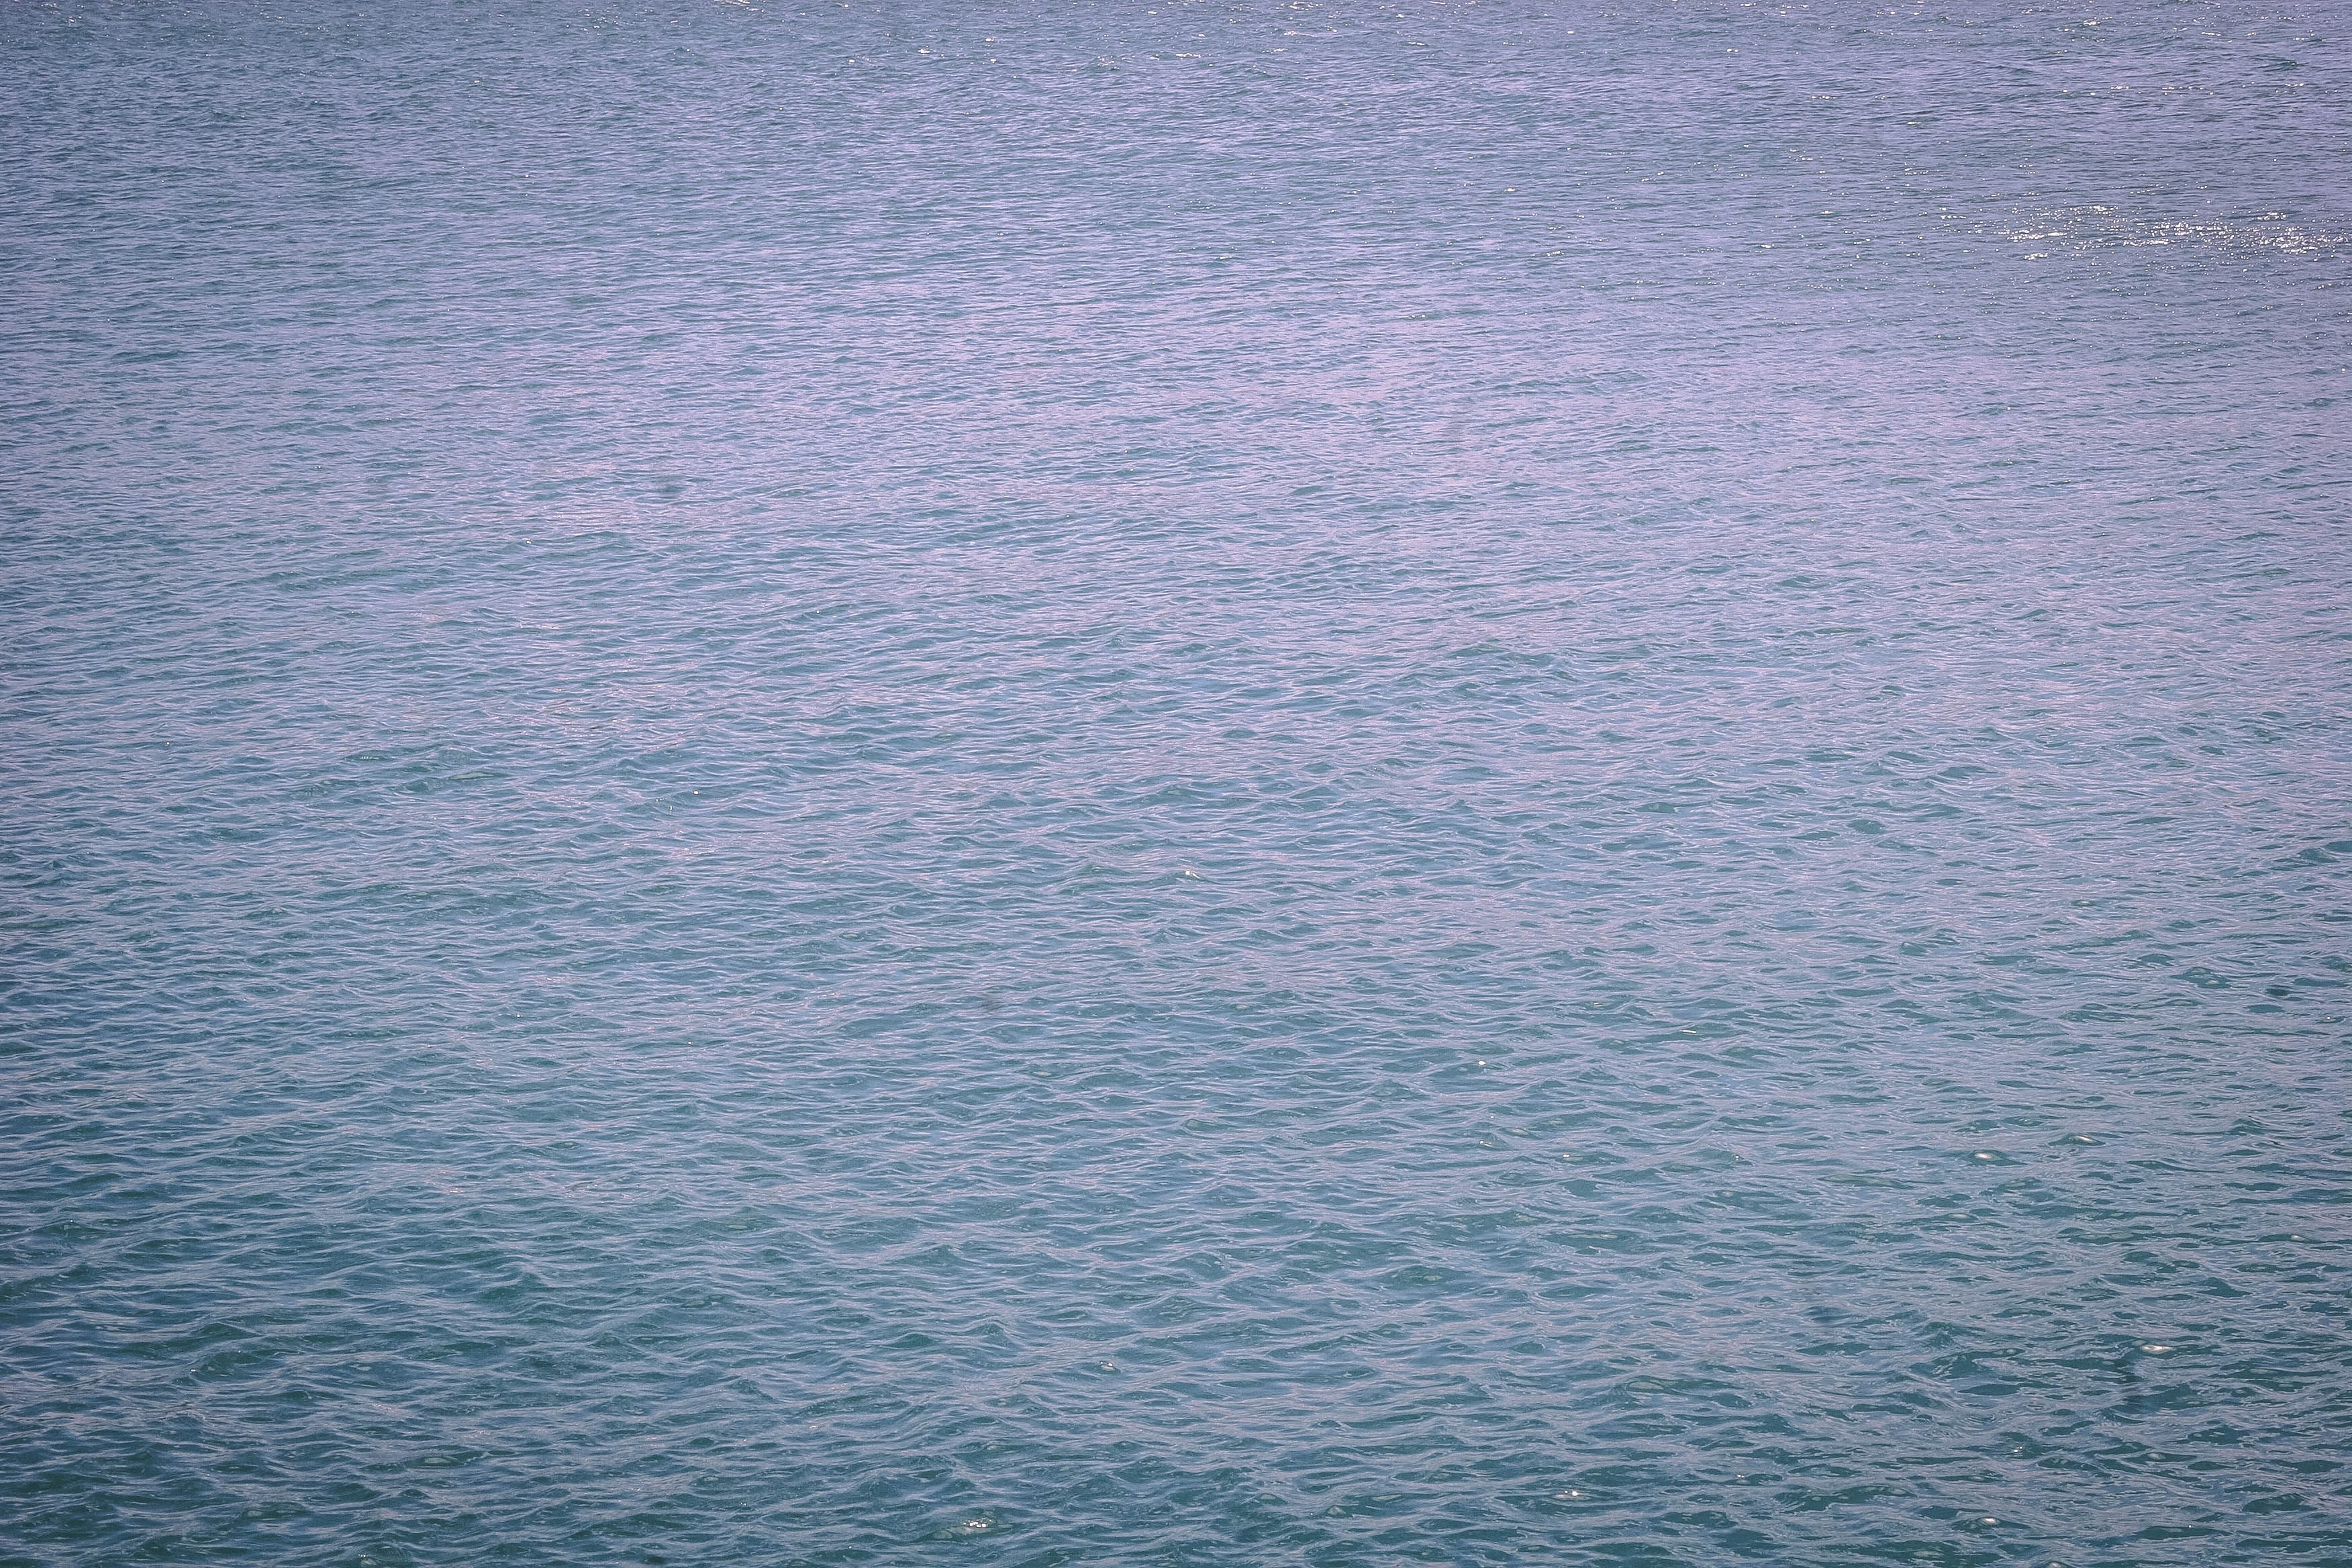 Selective Focus Photo of Water at Daytime, Beach, Blue, Color, Daylight, HQ Photo